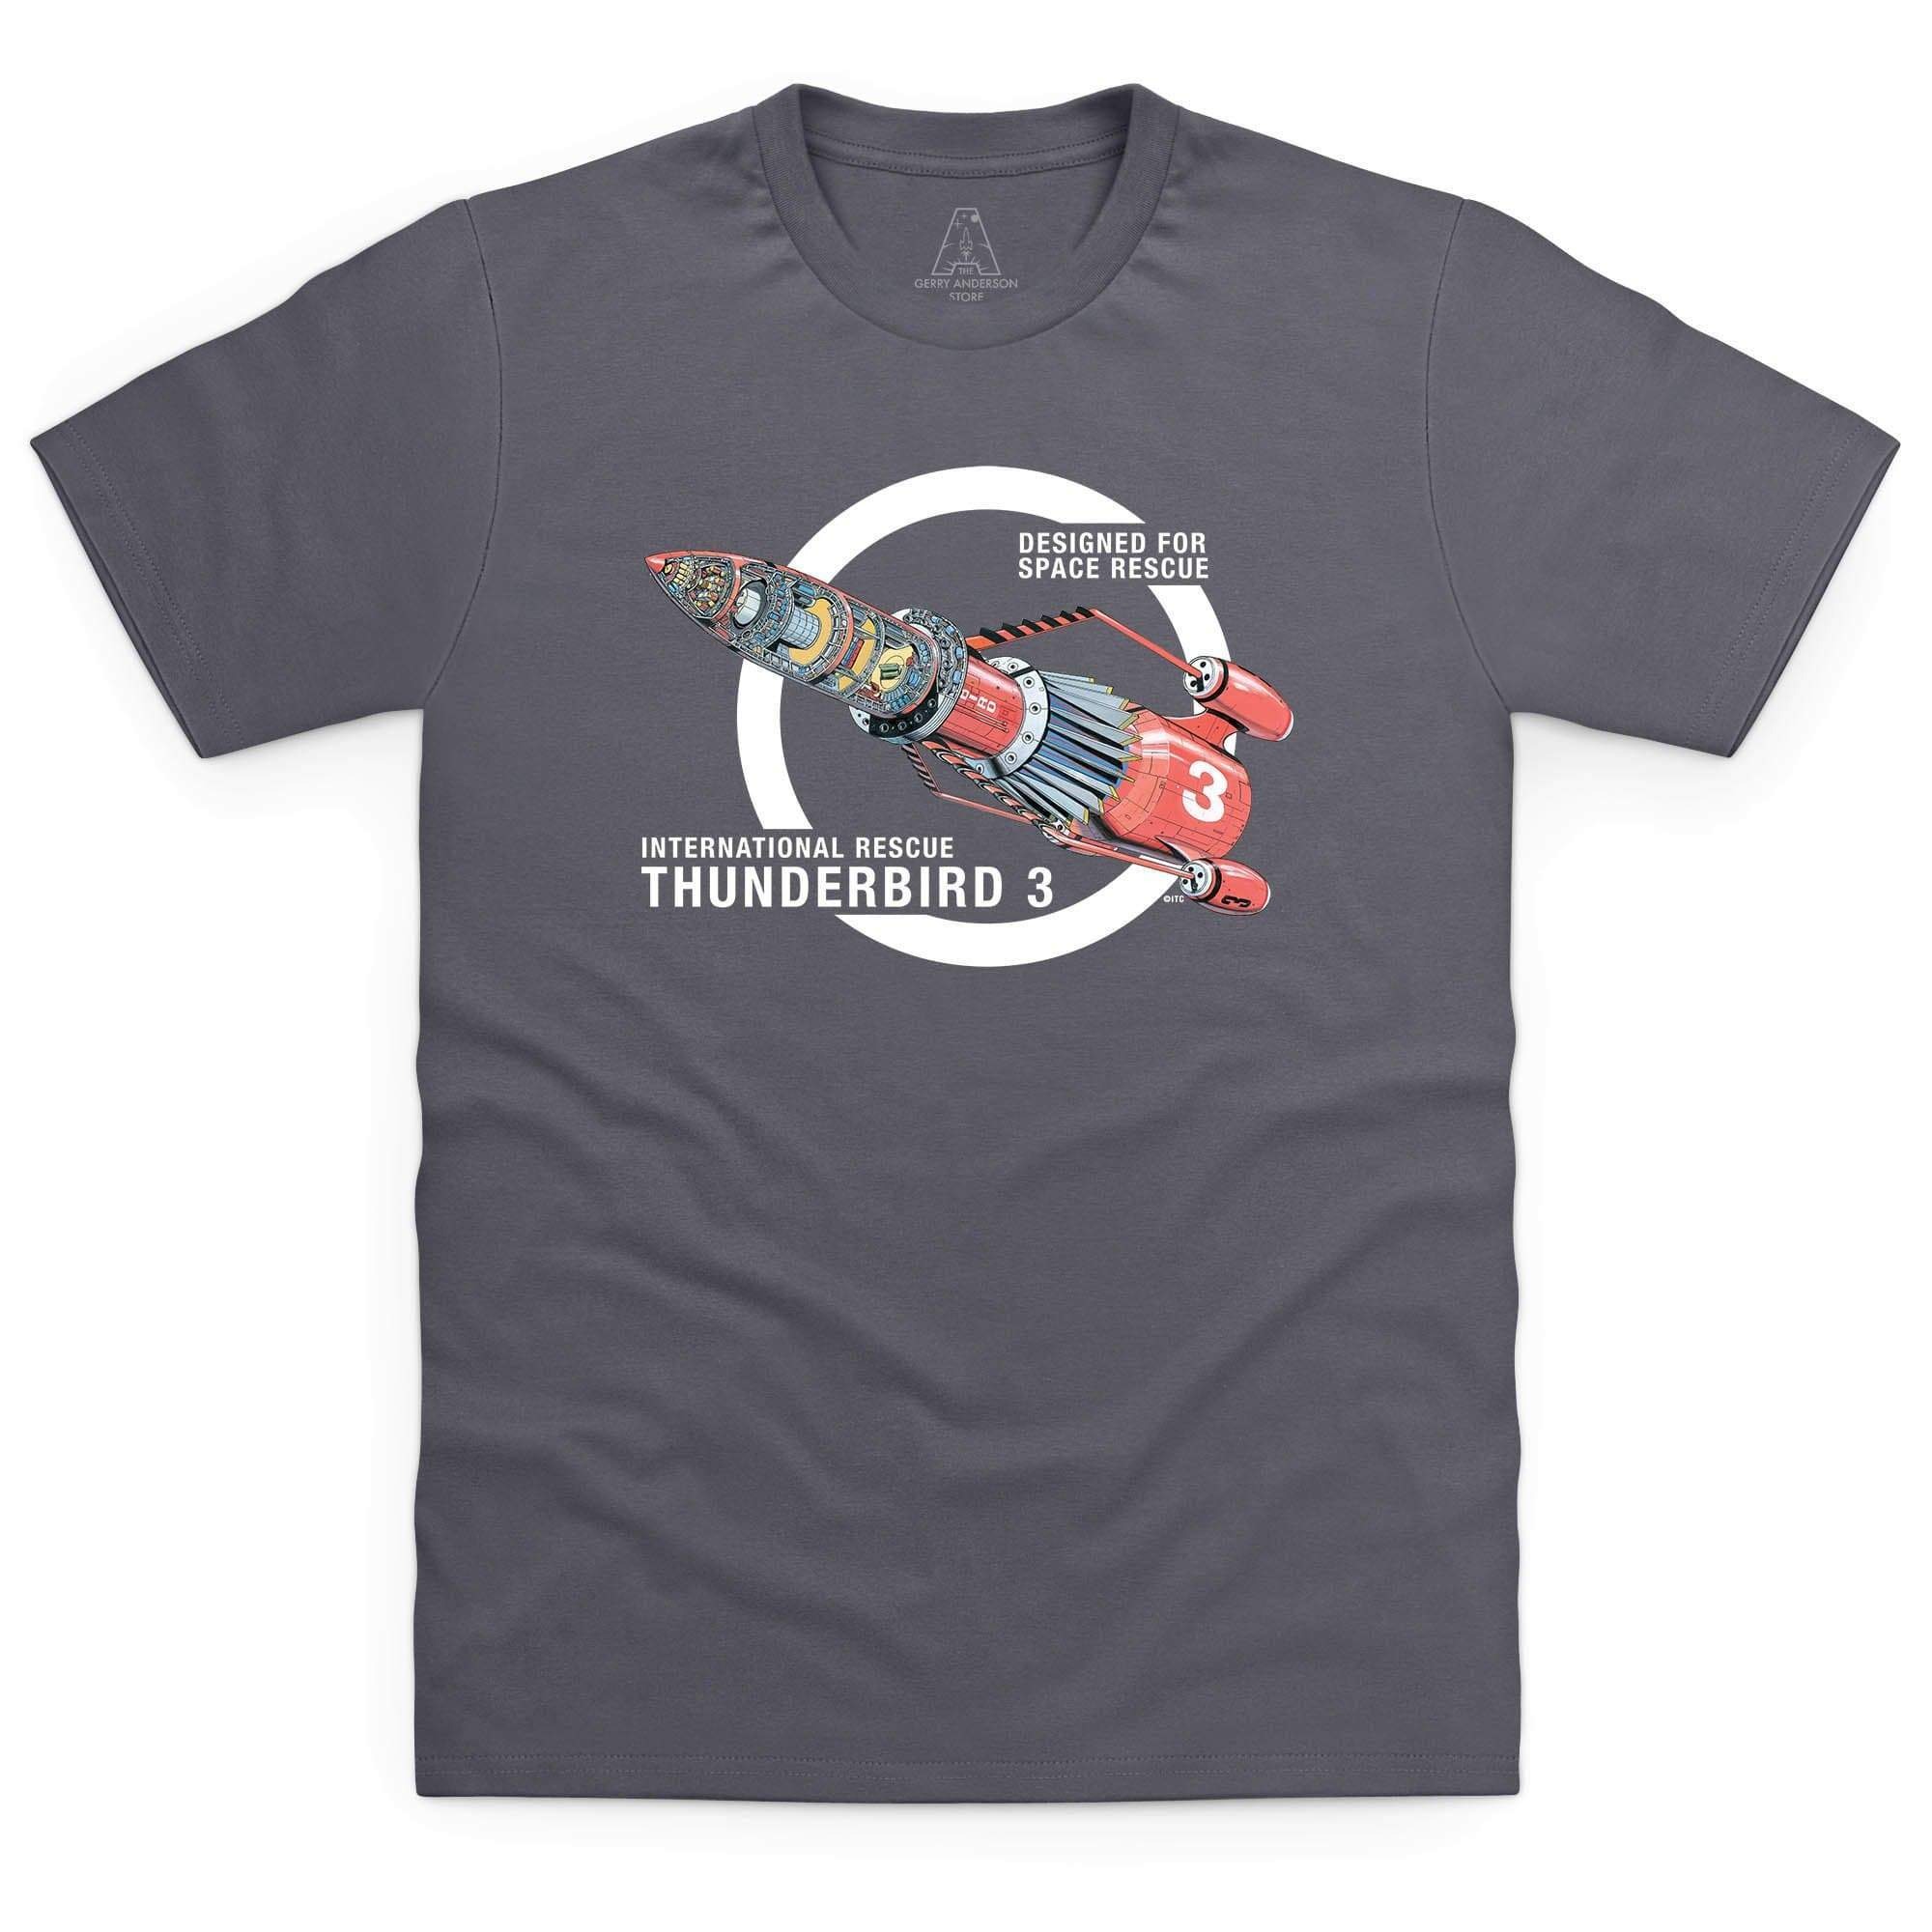 Thunderbirds: Thunderbird 3 Cutaway Men's T-Shirt [Official & Exclusive] - The Gerry Anderson Store